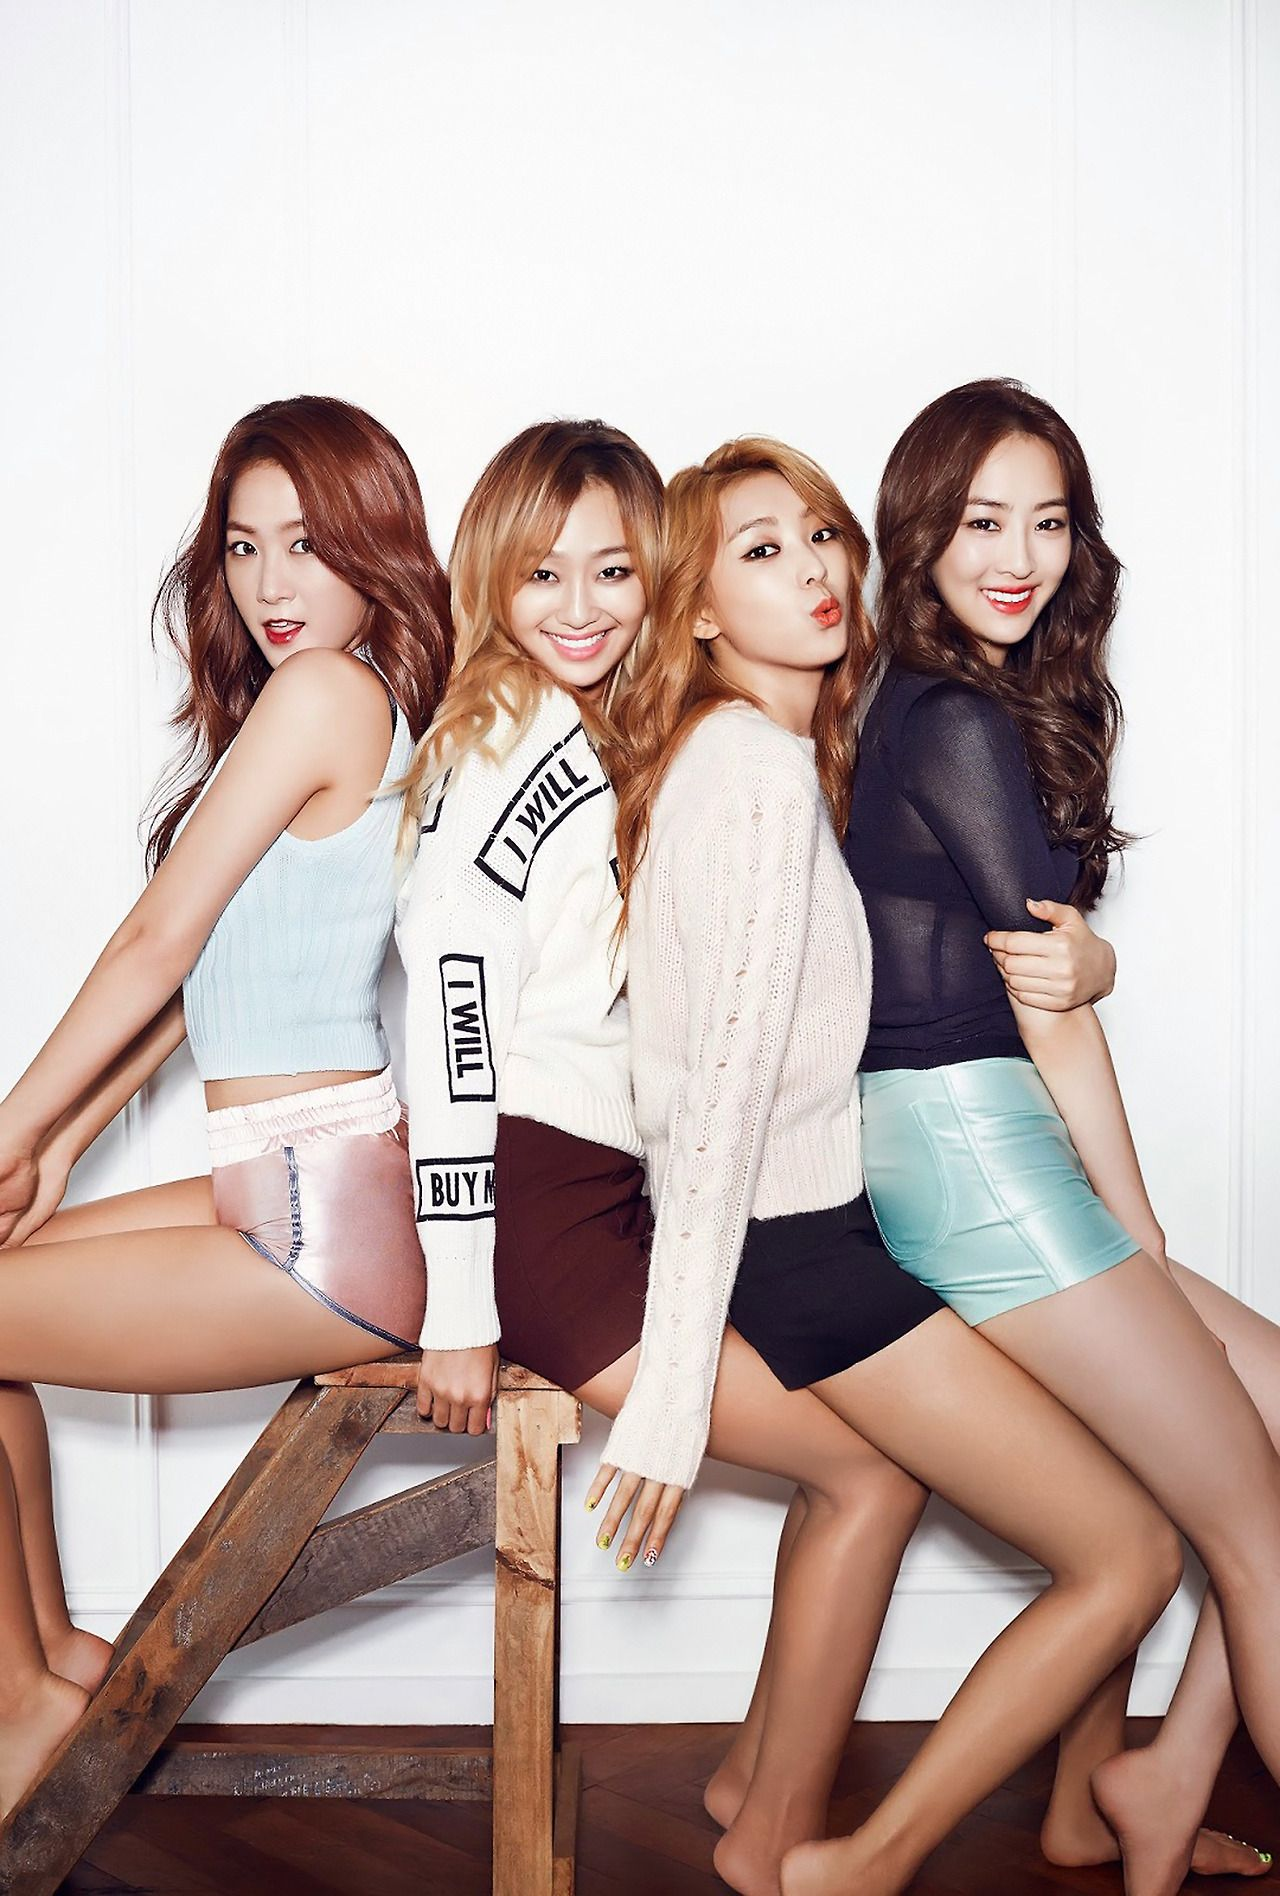 HQ] SISTAR for CéCi Korea 1350x2000 "